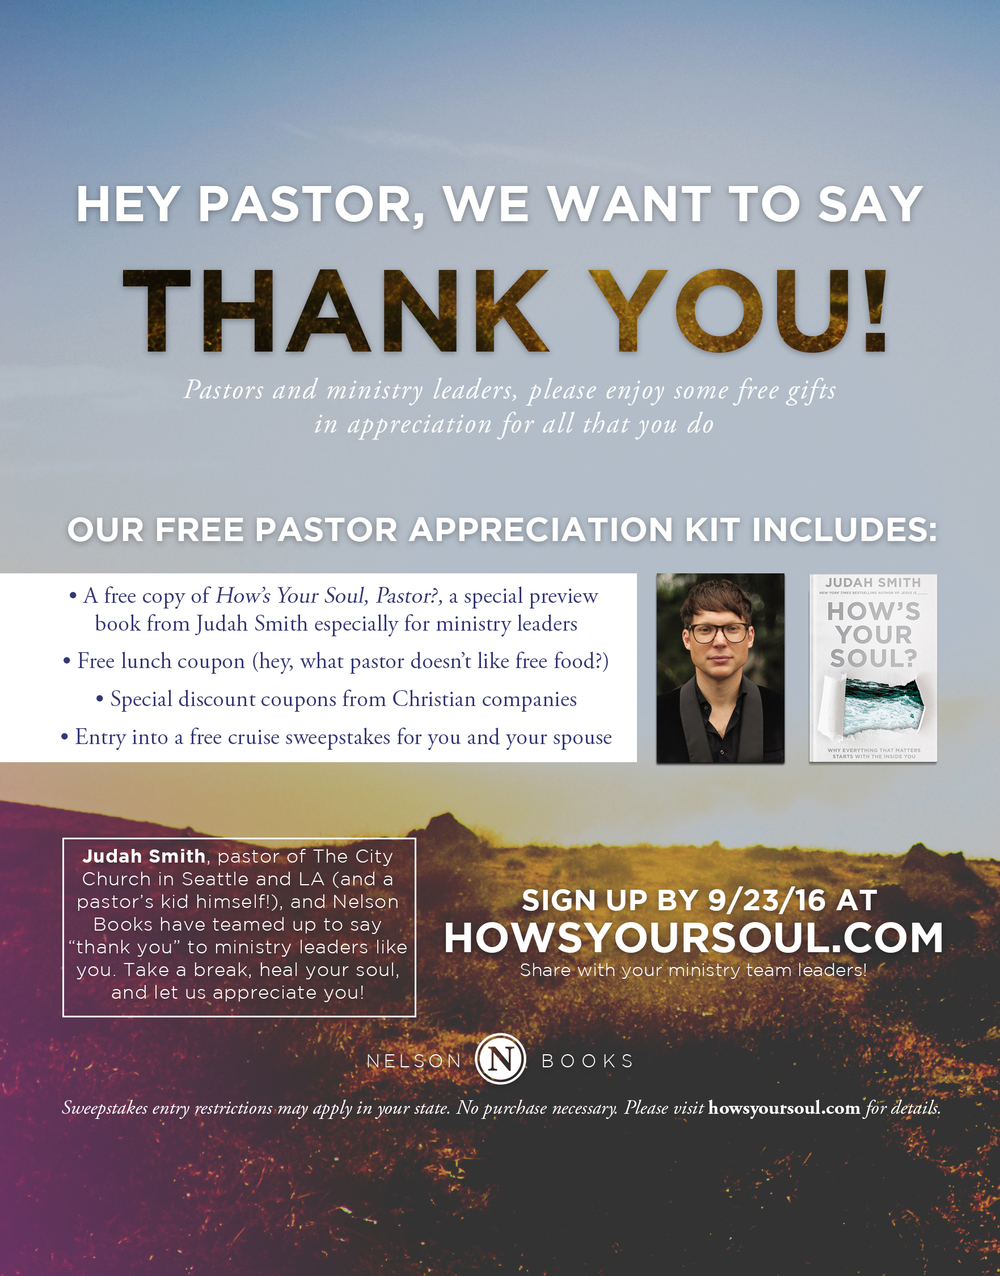 Advertisement   Nelson Books   How's Your Soul by Judah Smith